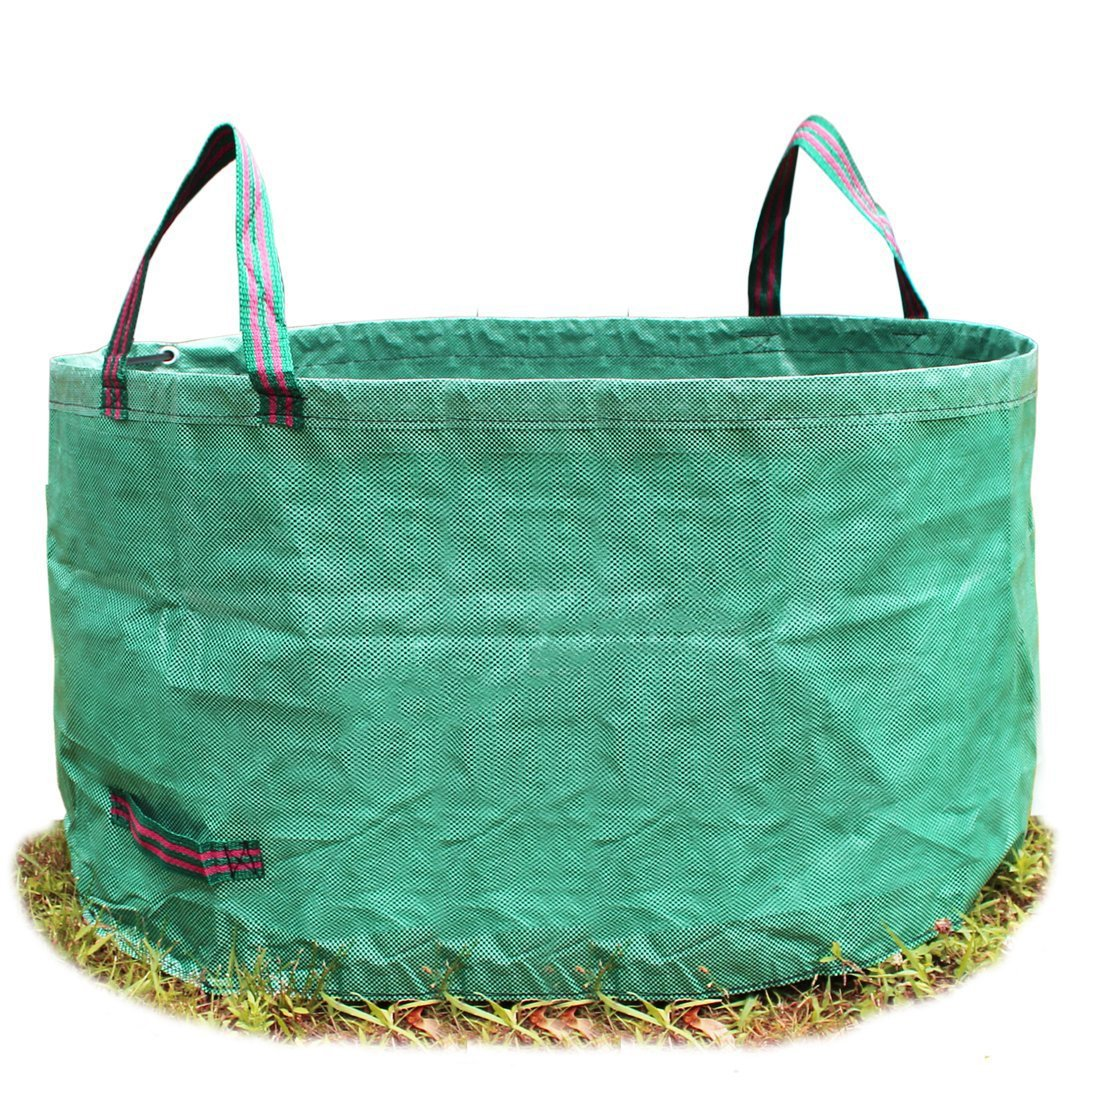 SYOOY 63 Gallon Garden Tool Trash Bag Green Lawn Garbage Storage Bag with Handles for Outdoor Garden Lawn - 18 Inches Height x 32 Inches Width